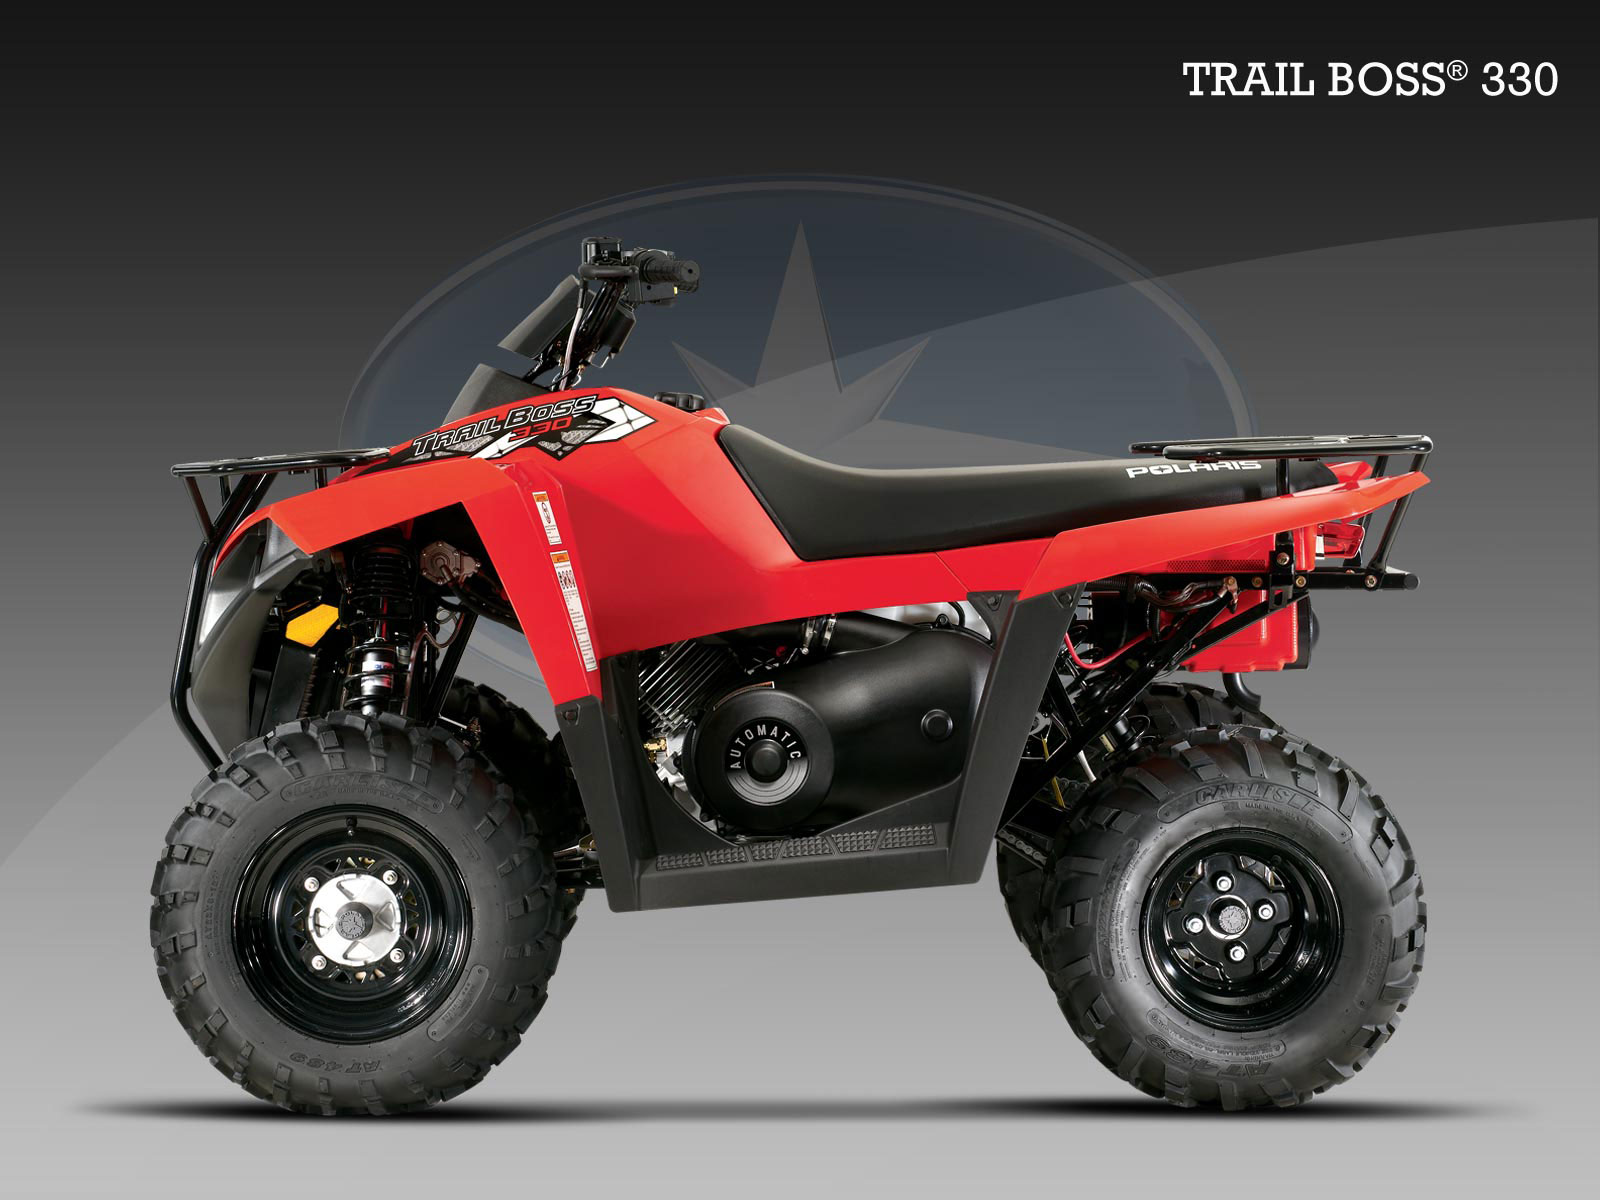 Polaris Trail Boss 330 2008 images #169653